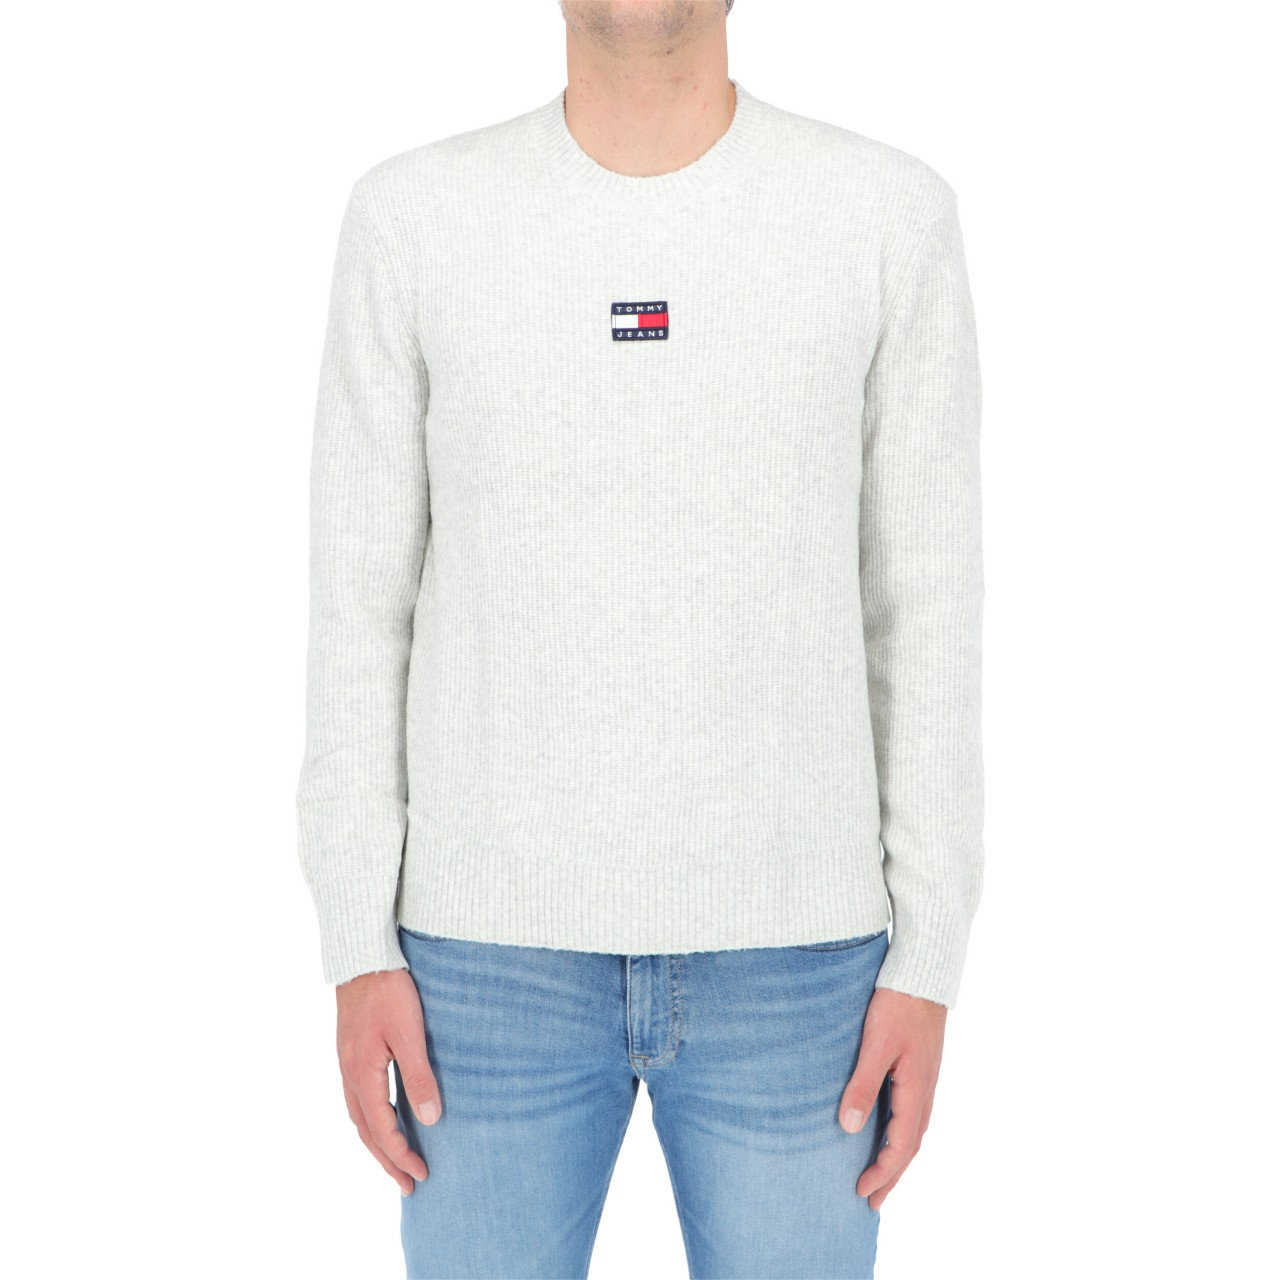 Tommy hilfiger Uomo Maglia Tommy Hilfiger Jeans Uomo Solid Badge Sweater 11341Q